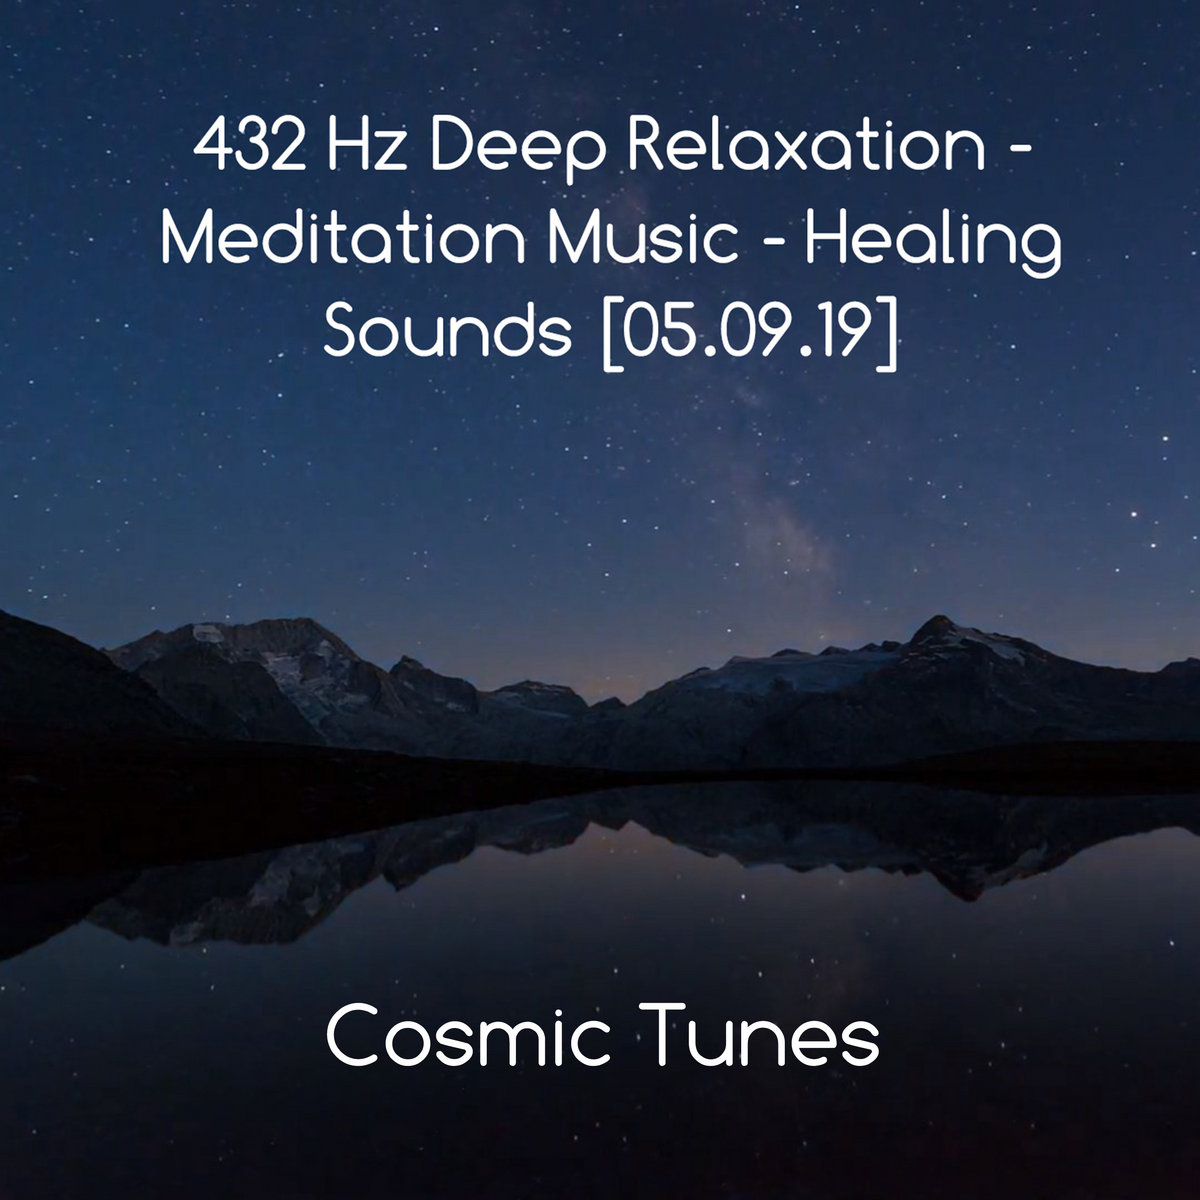 432 Hz Deep Relaxation - Meditation Music - Healing Sounds [05.09.19] by Cosmic Tunes